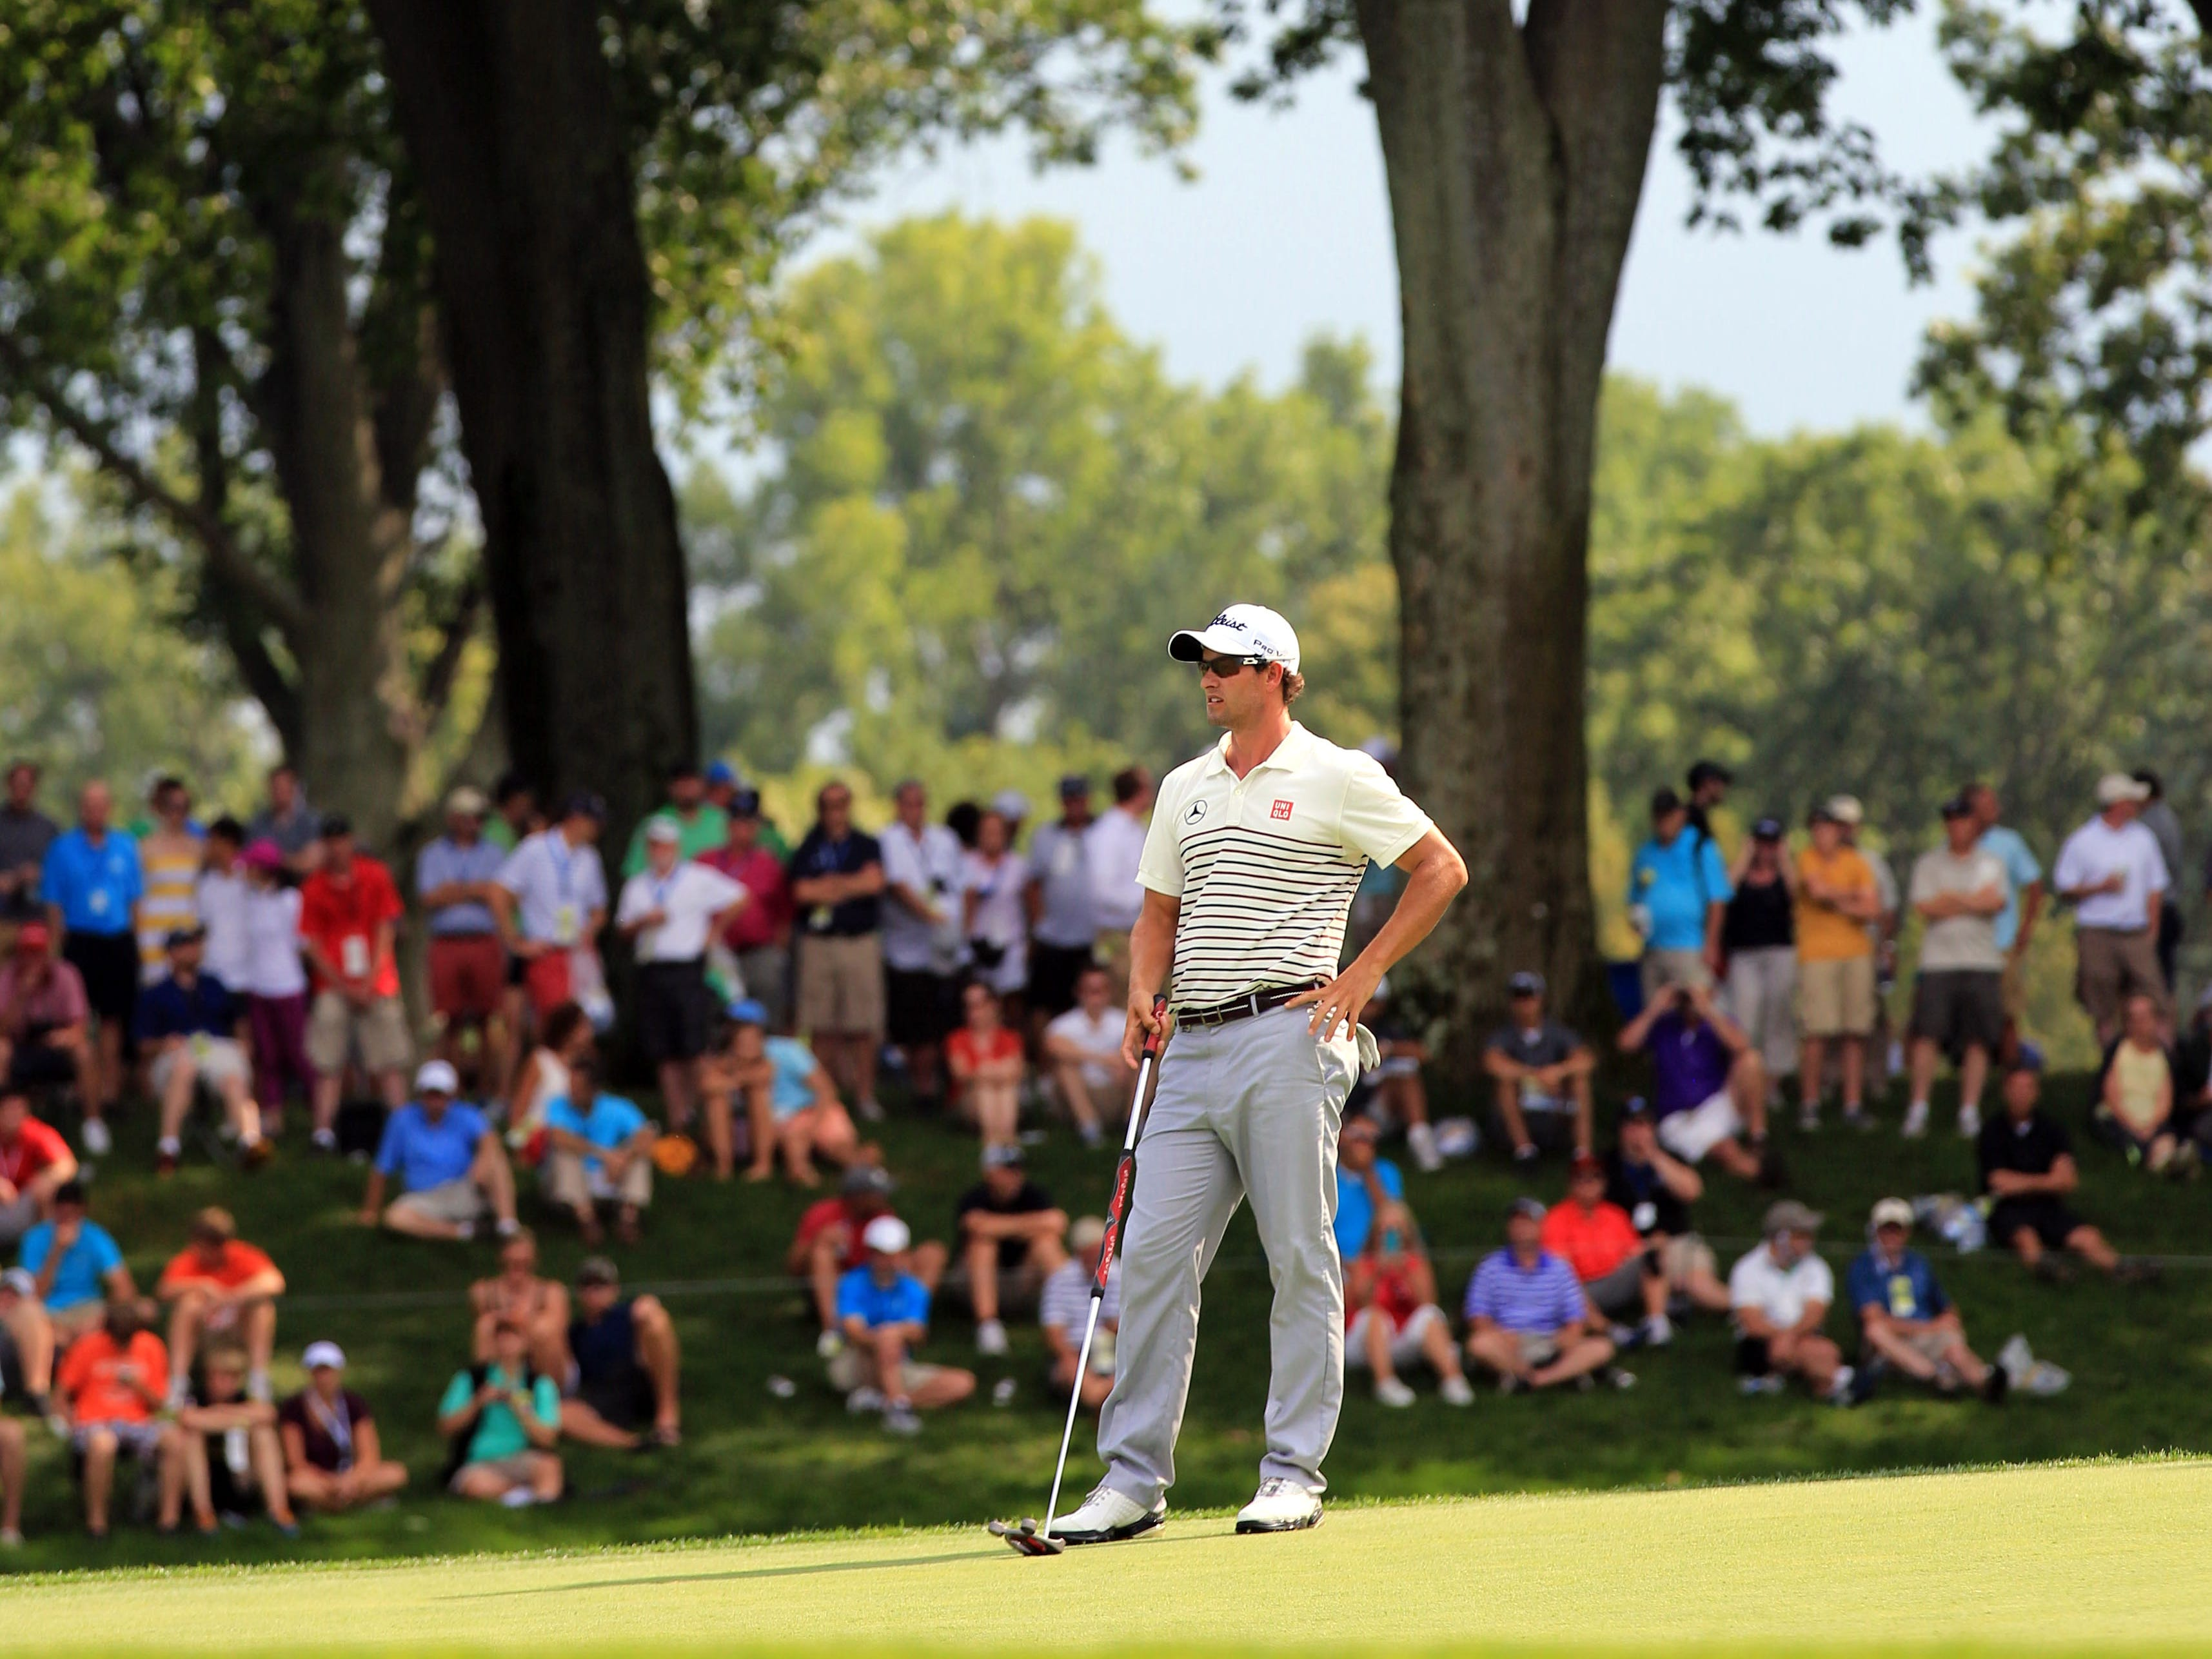 Adam Scott waits to putt on the 9th green during the first round of the 95th PGA Championship at Oak Hill Country Club.